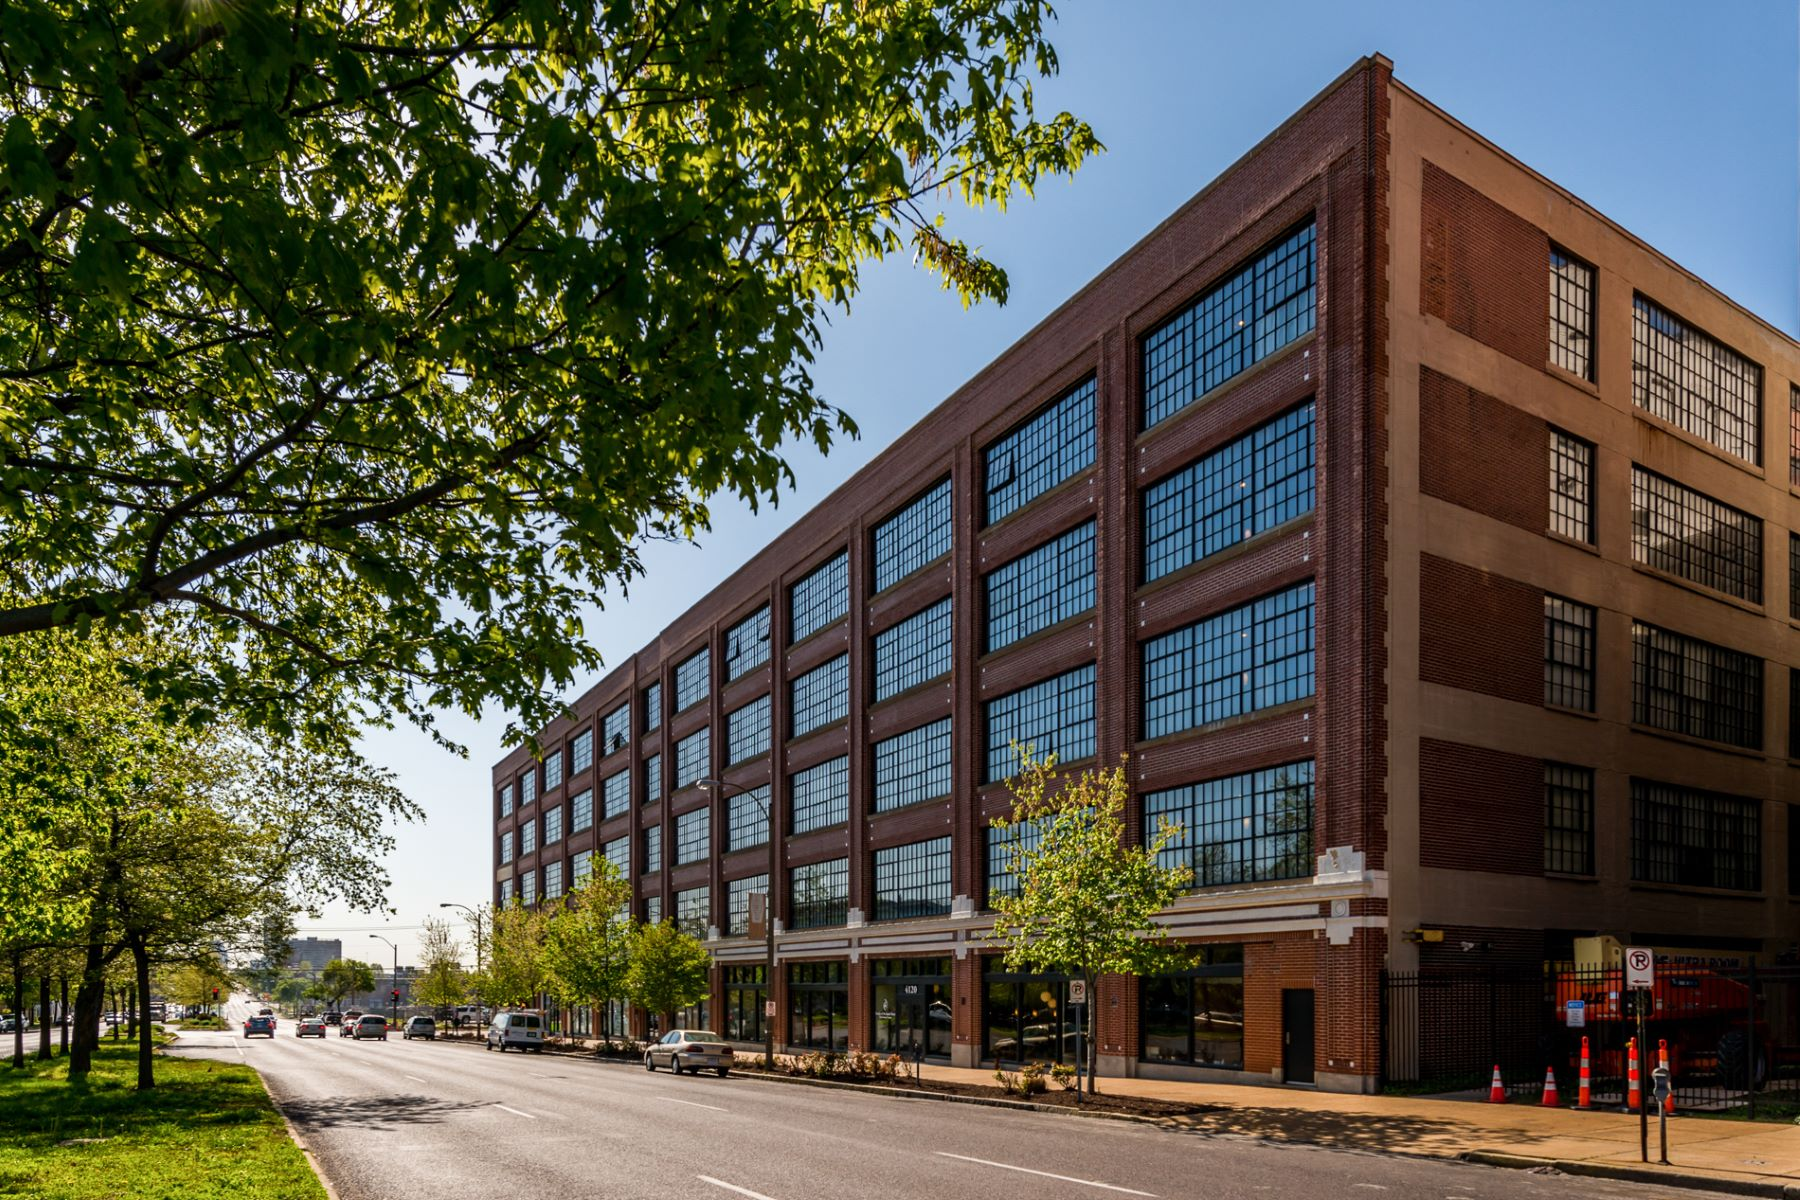 Condominium for Sale at Forest Park Ave 4100 Forest Park Ave # 220 St. Louis, Missouri 63108 United States